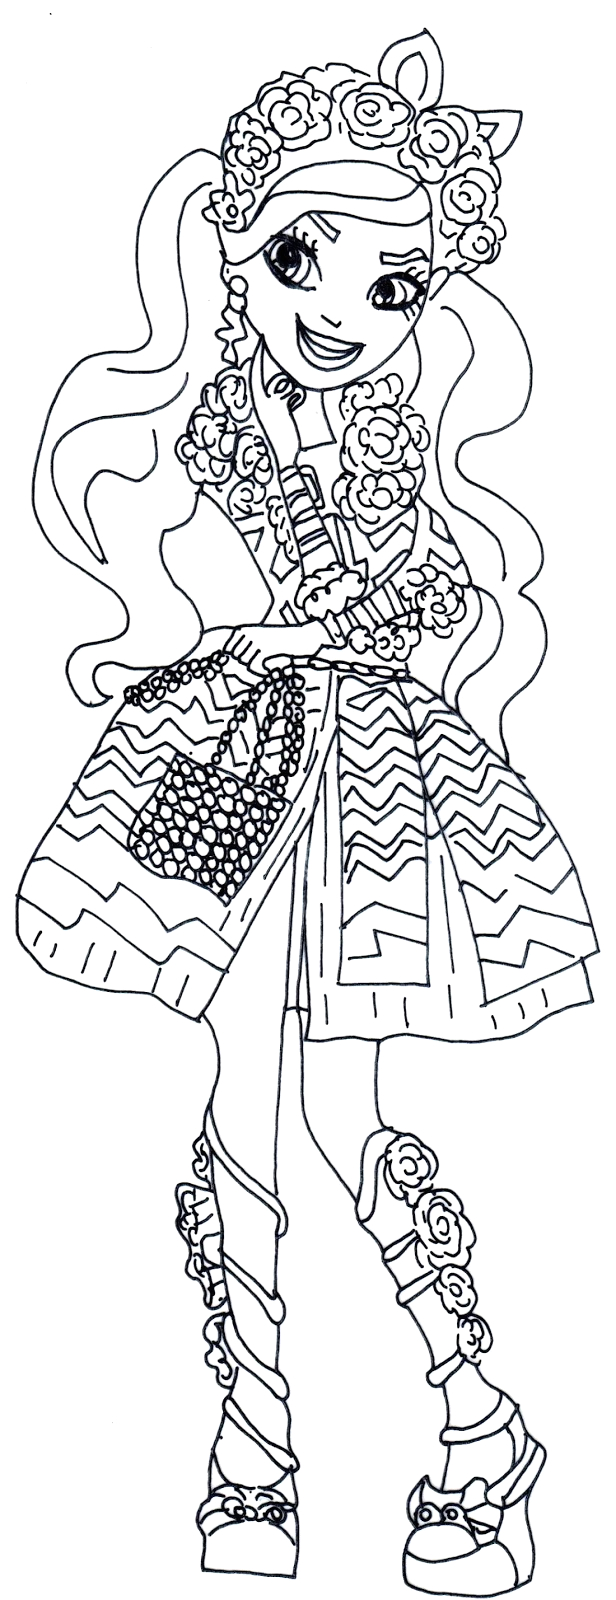 ever after high kitty cheshire coloring pages sketch templates